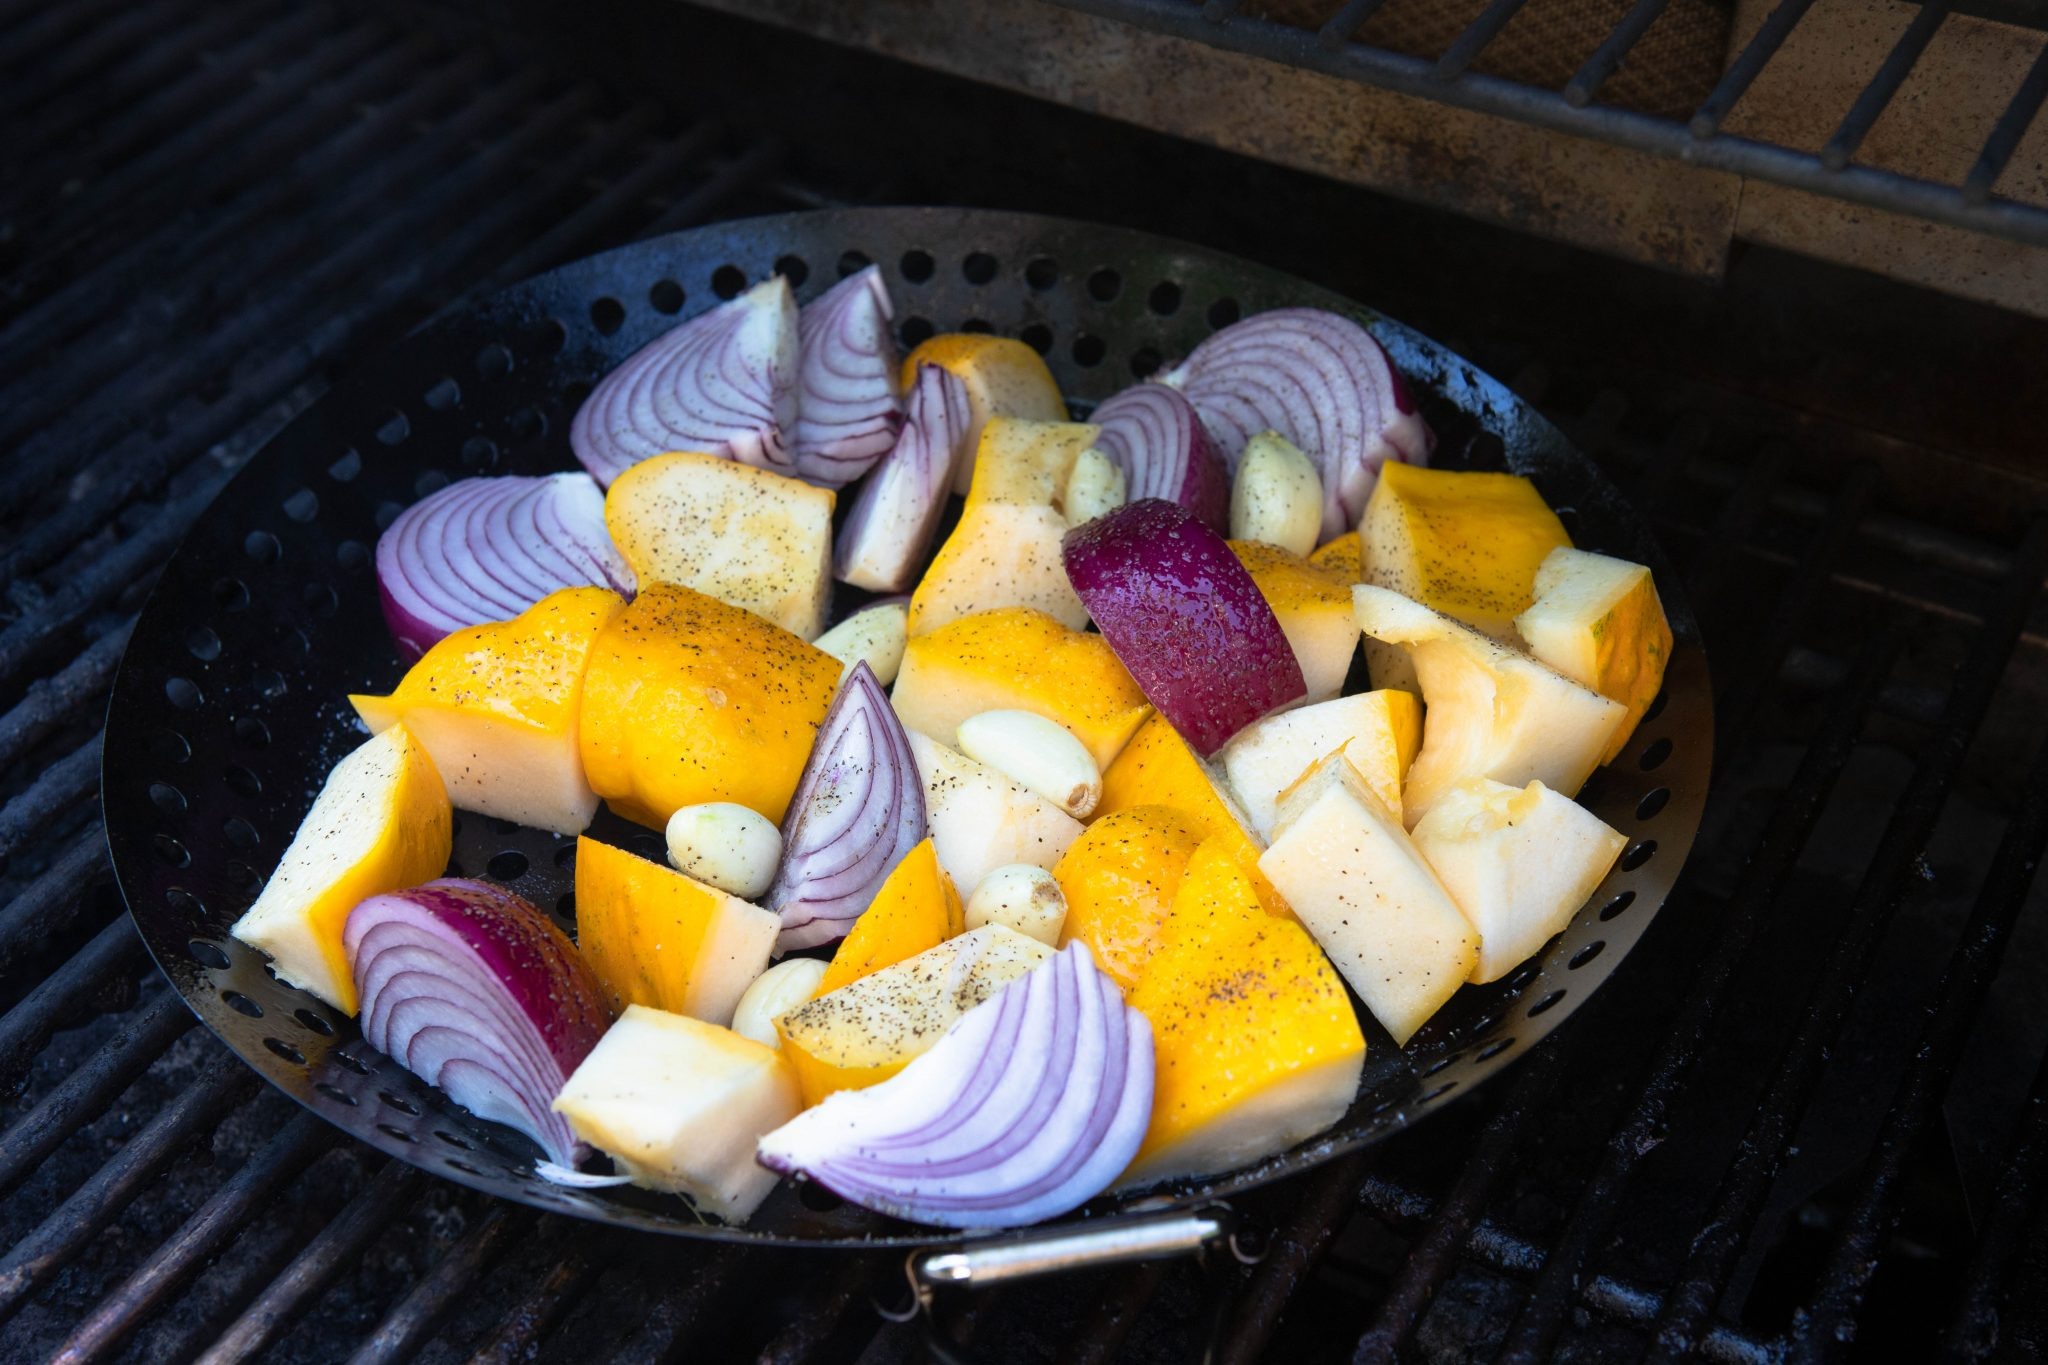 grilled vegetables in a grill basket on a bbq